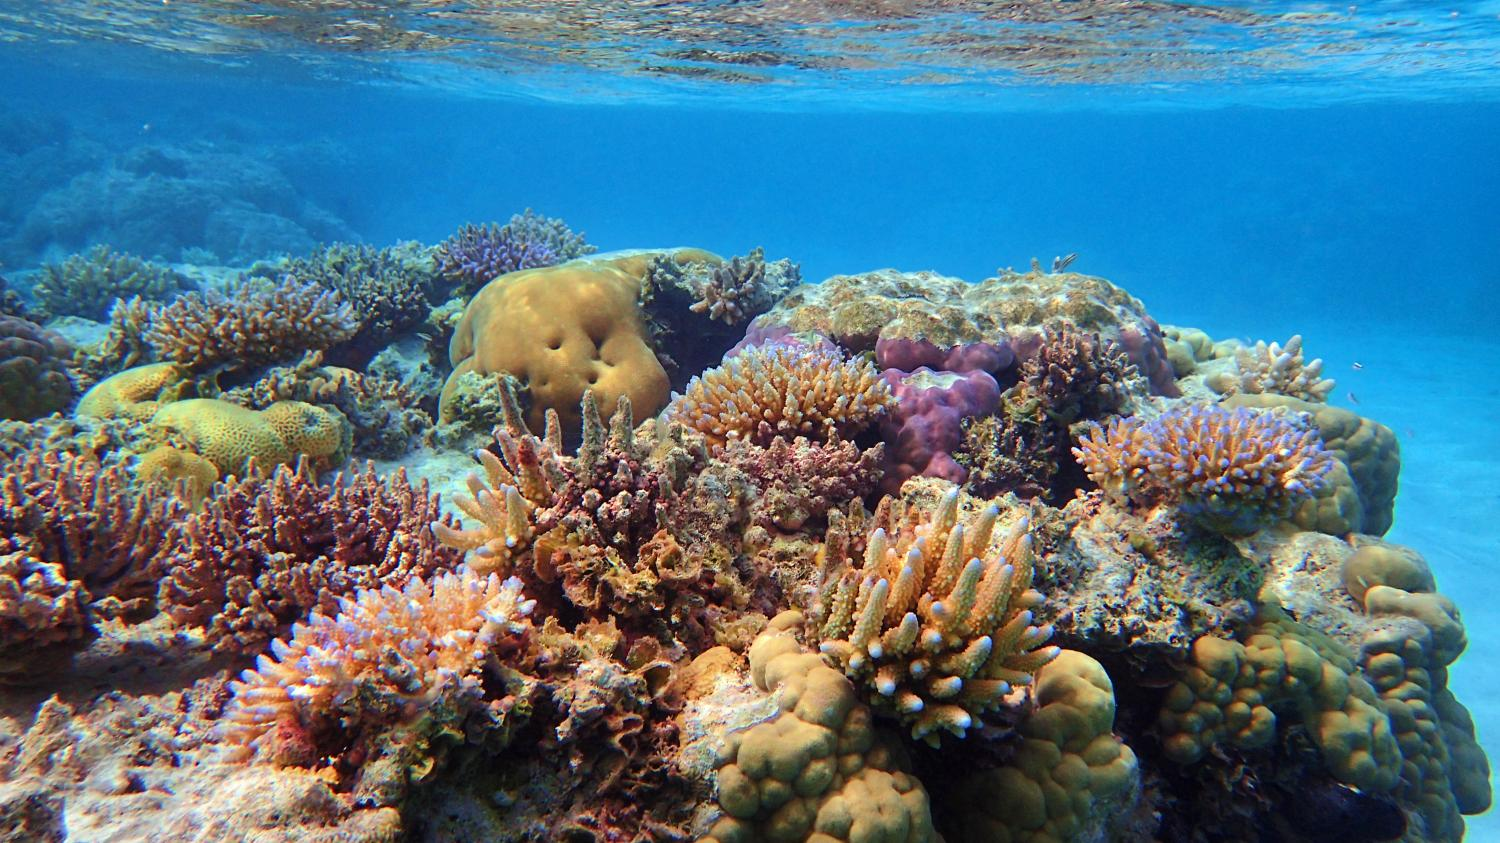 a look at how coral reefs form and its prevalence Basic facts about coral reefs coral reefs are some of the most diverse ecosystems in the world thousands of identical polyps live together and form a coral colony.